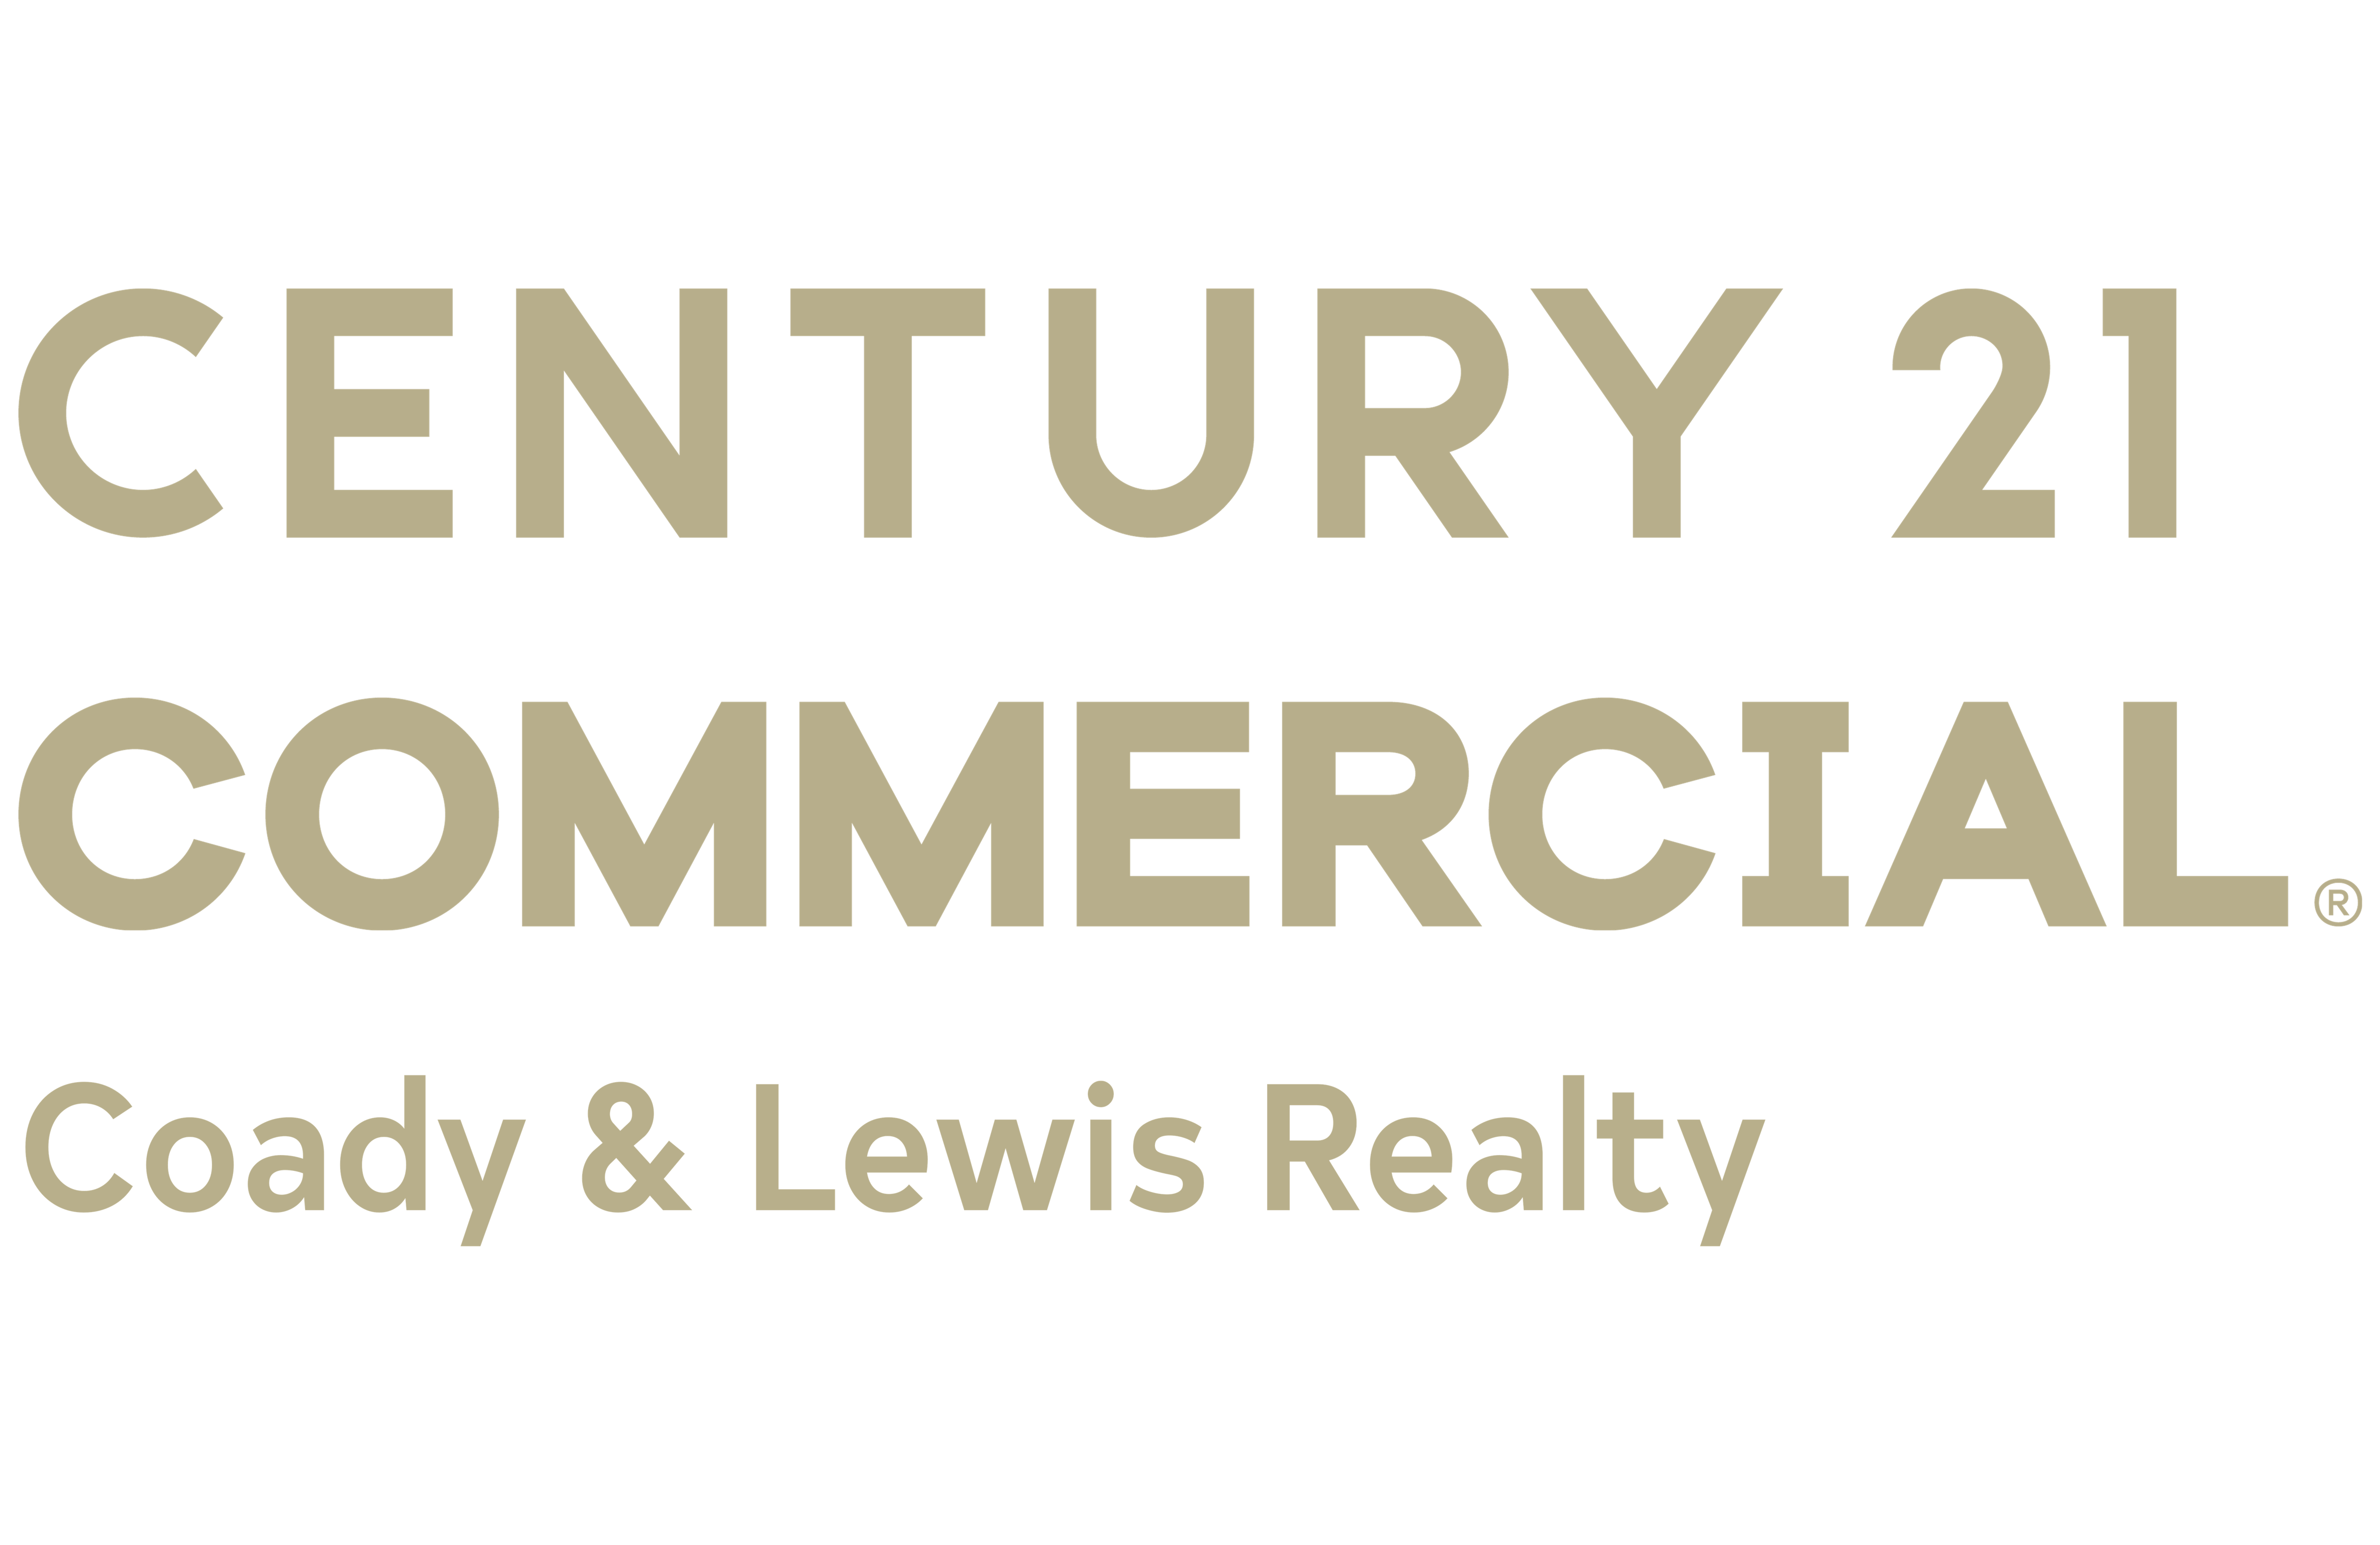 Charles Emmerich of CENTURY 21 Coady & Lewis Realty logo